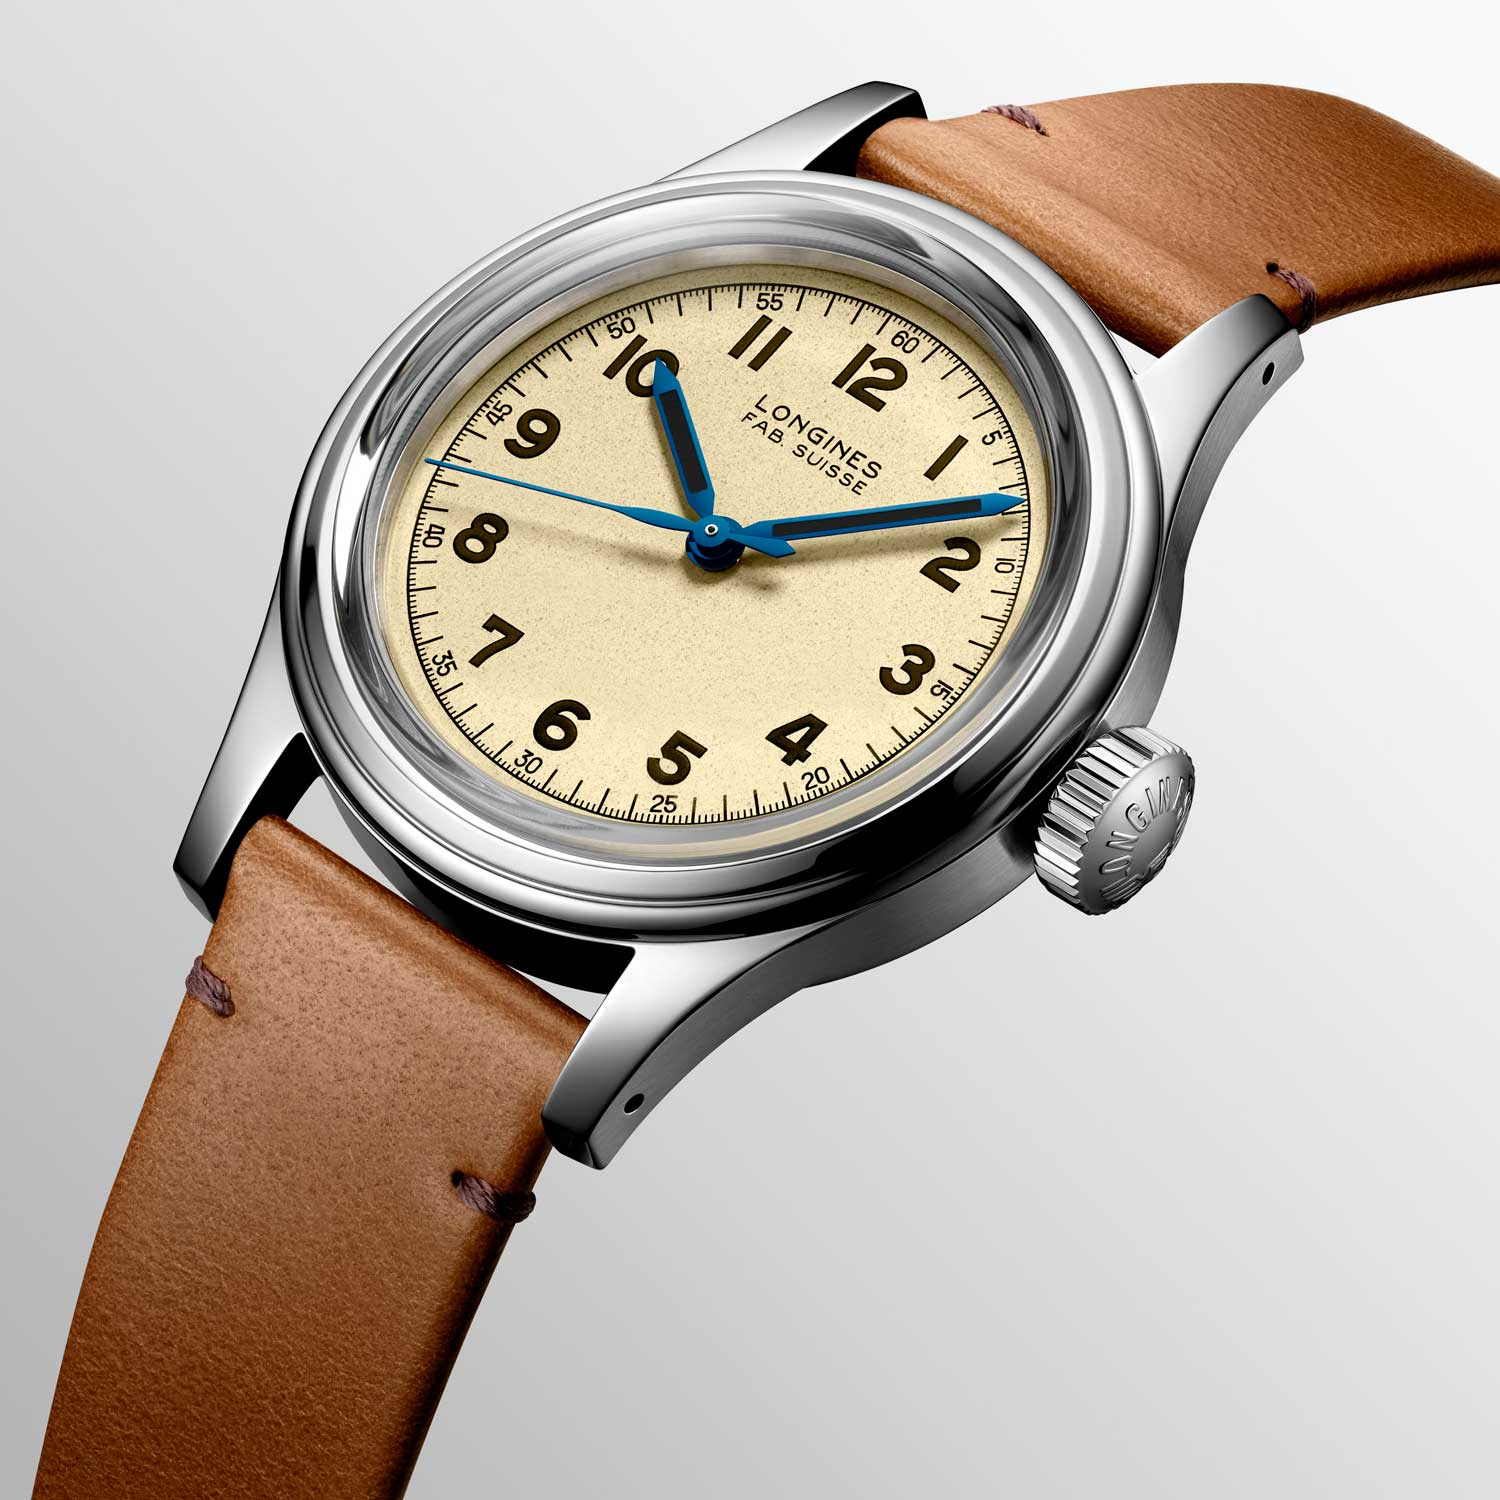 The watch has a lightly grained dial with blued steel hands coated with brown Superluminova